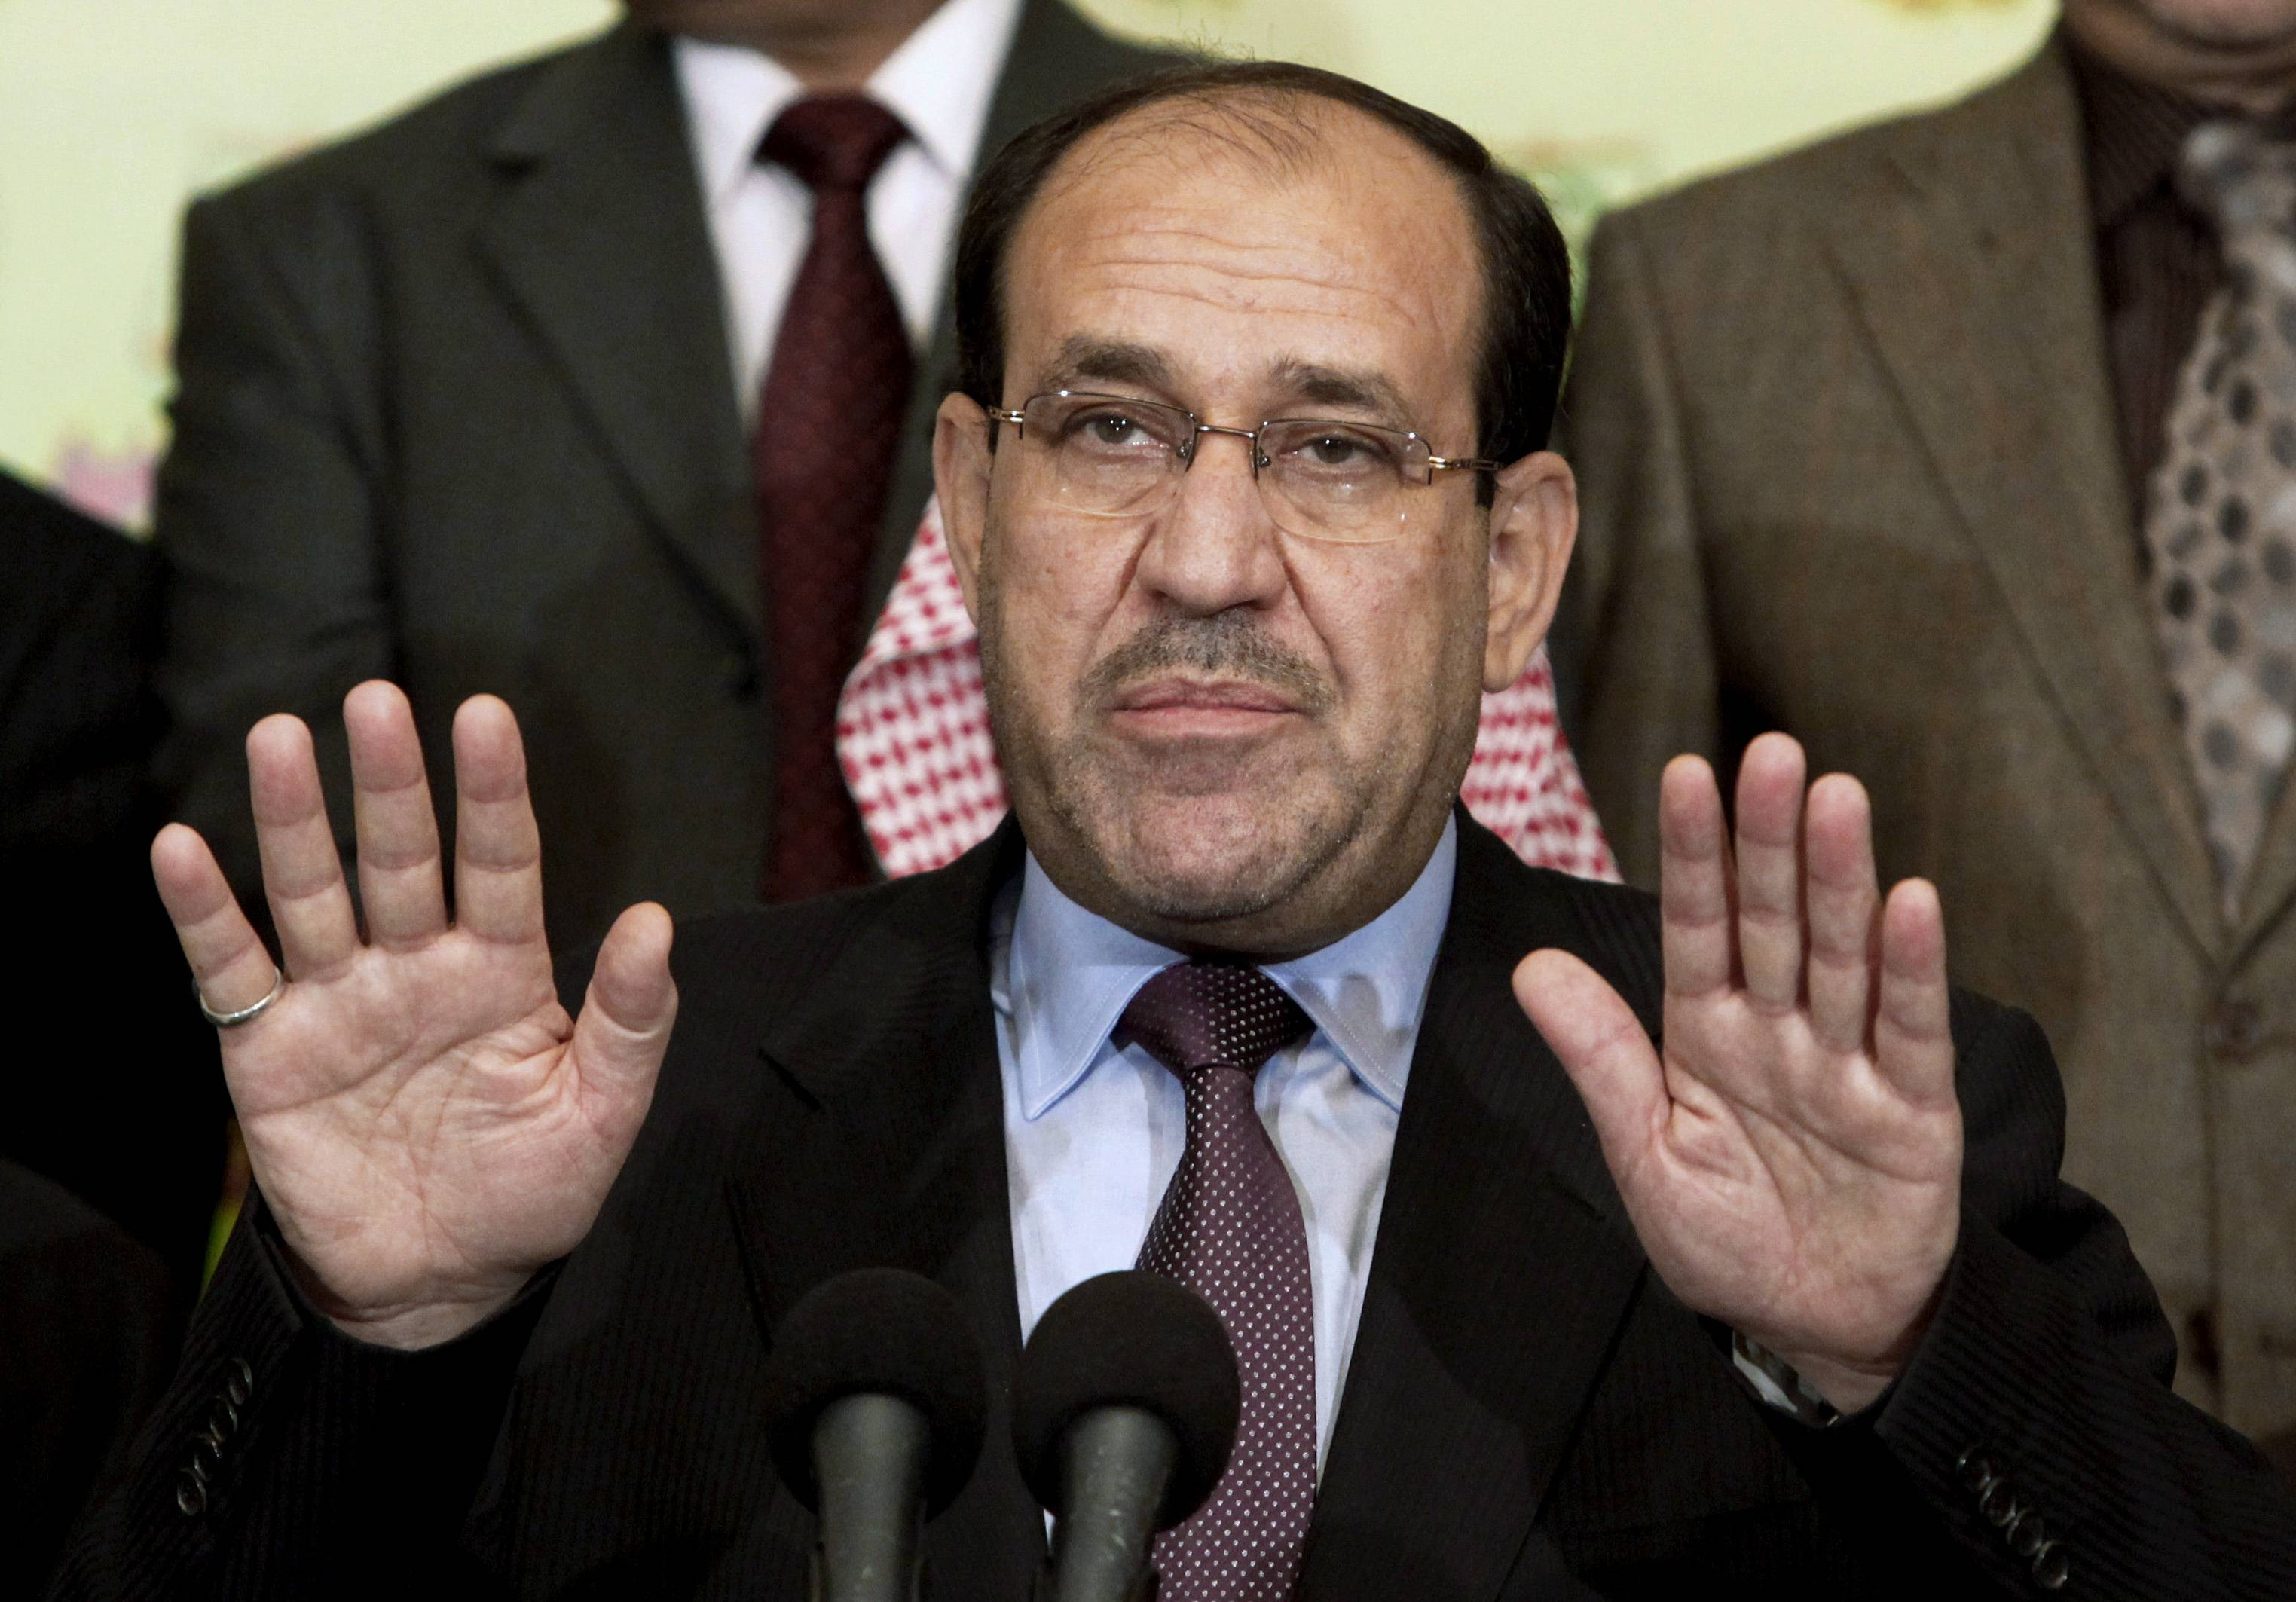 Iraqi Prime Minister Nouri al-Maliki has given up his post as prime minister to Haider al-Abadi, state television reported Thursday, Aug. 14, 2014 -- a move that could end a political deadlock that plunged Baghdad into uncertainty as the country fights a Sunni militant insurgency.